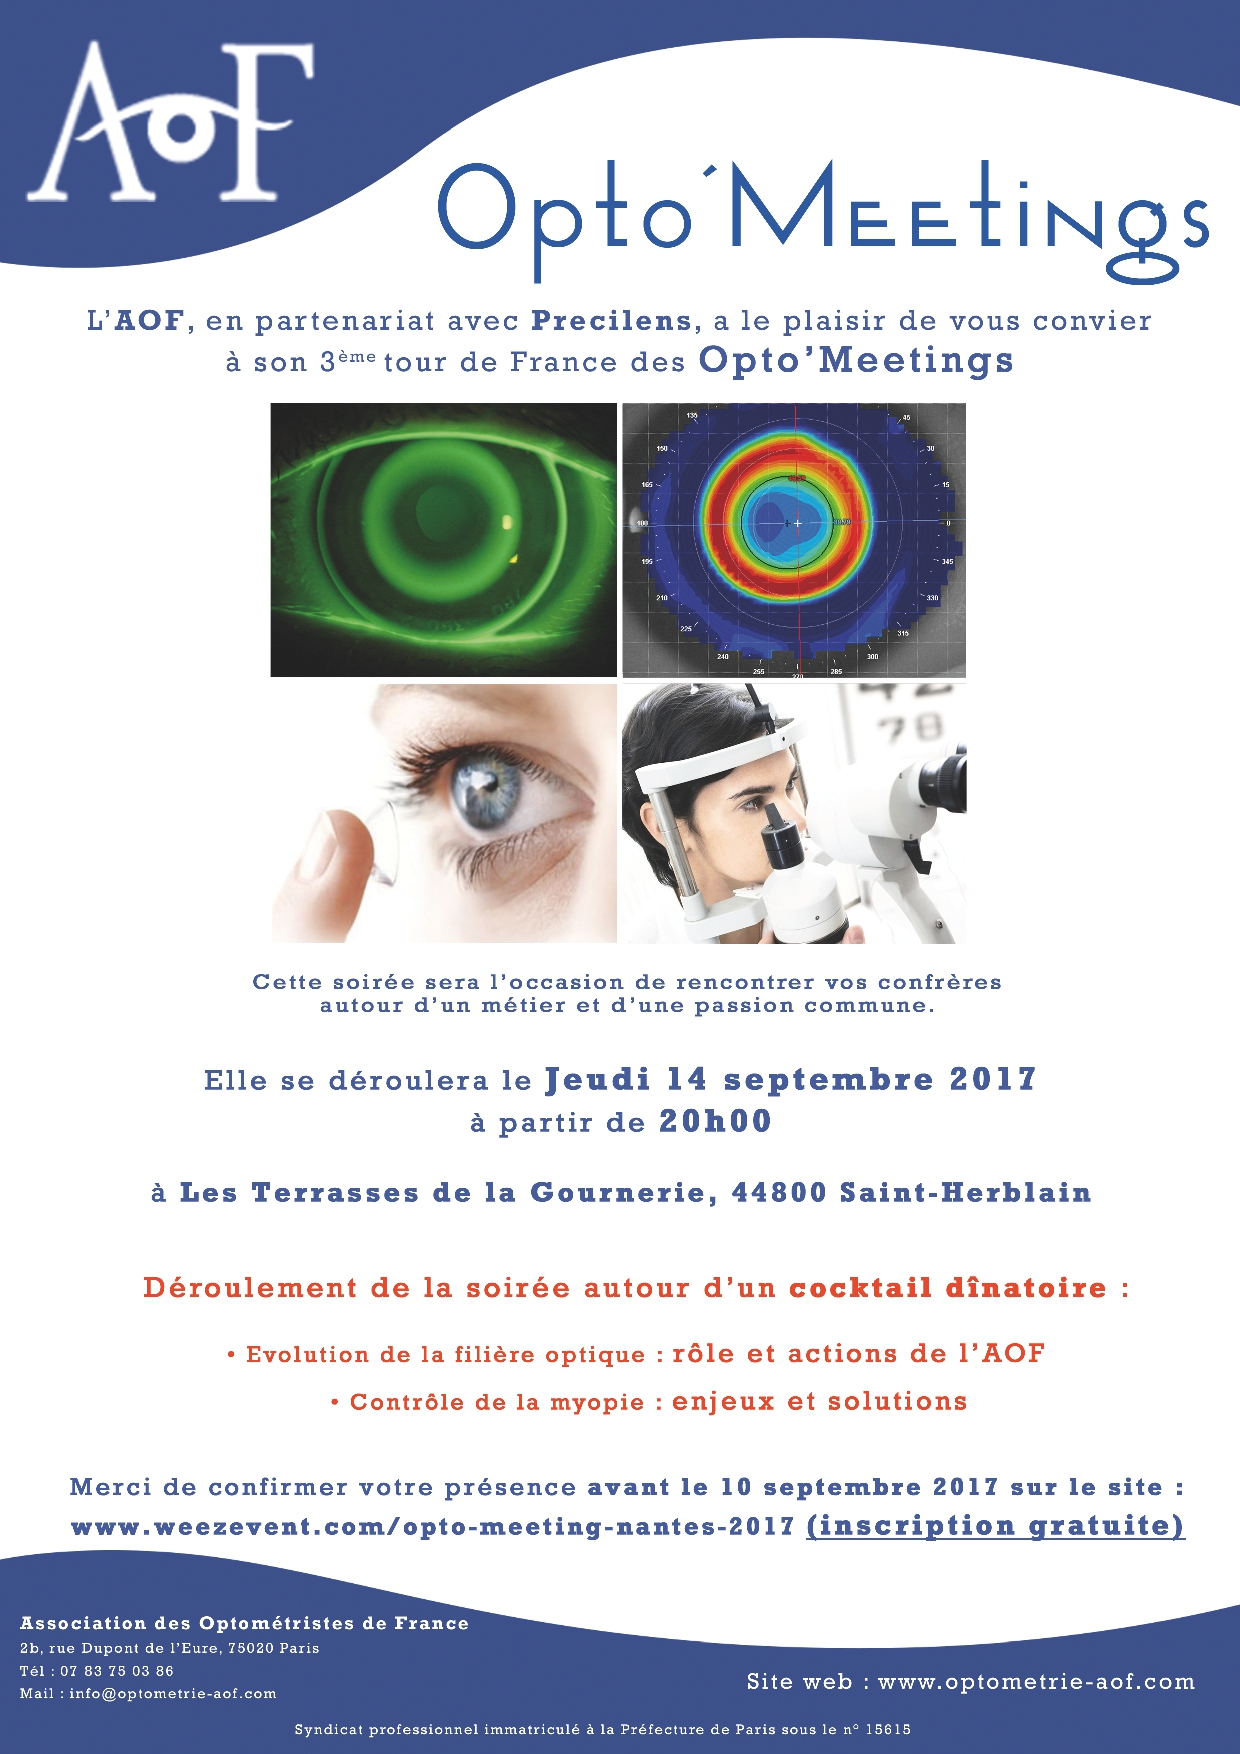 Opto'Meetings Nantes, Inscription gratuite.